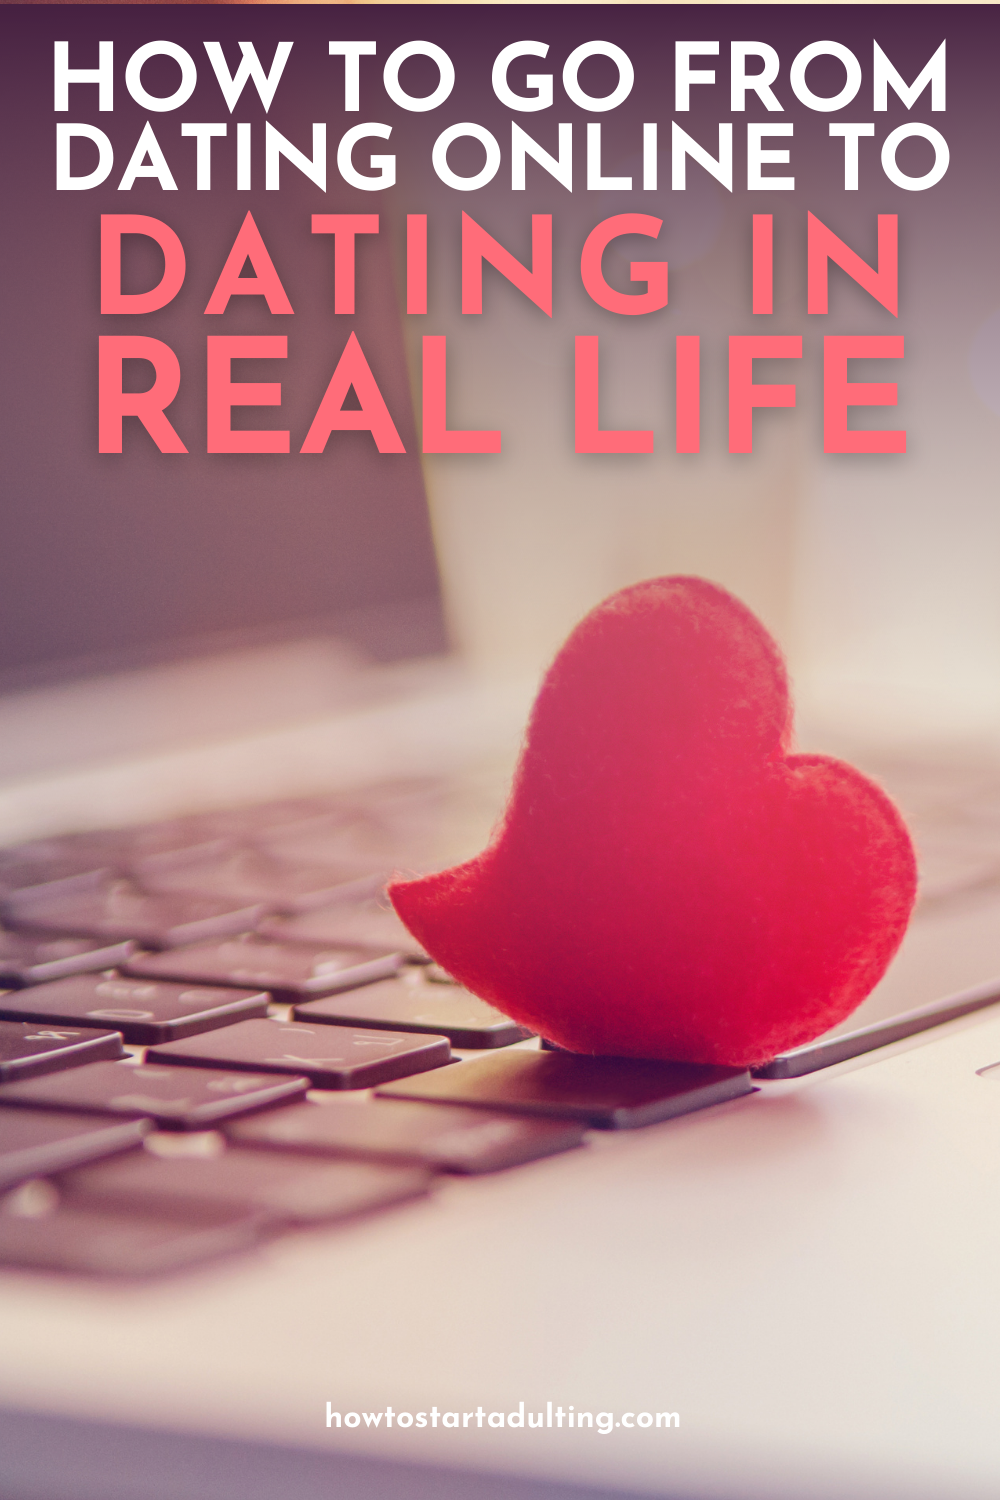 How To Go From Online Dating To Real Life Dating